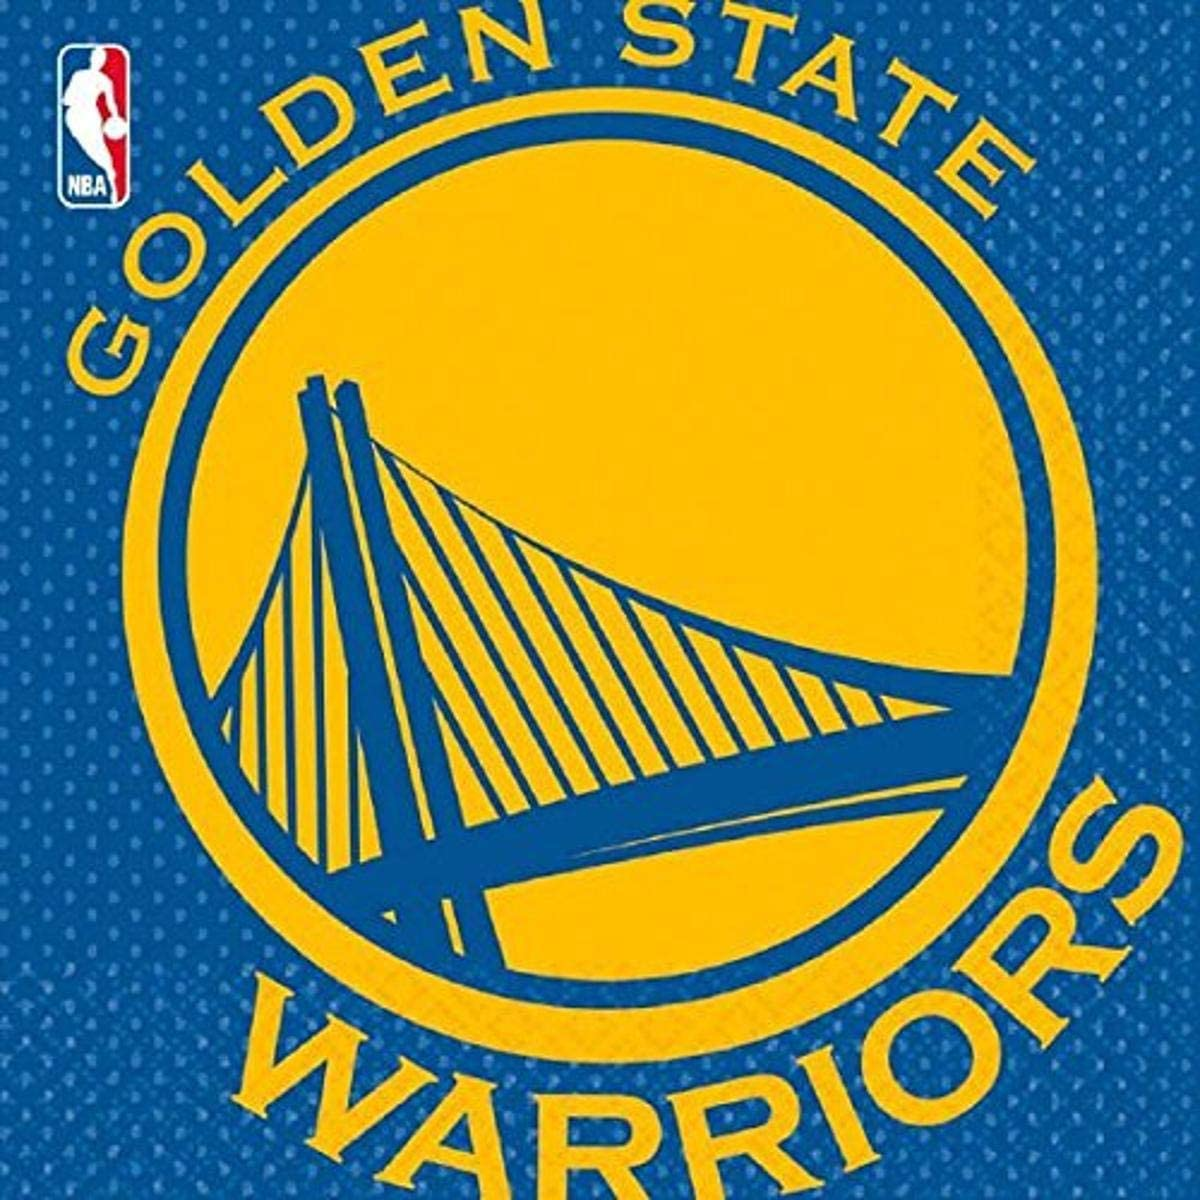 Amscan 513623 Golden State Warriors NBA Collection Luncheon Napkins, 16 pcs